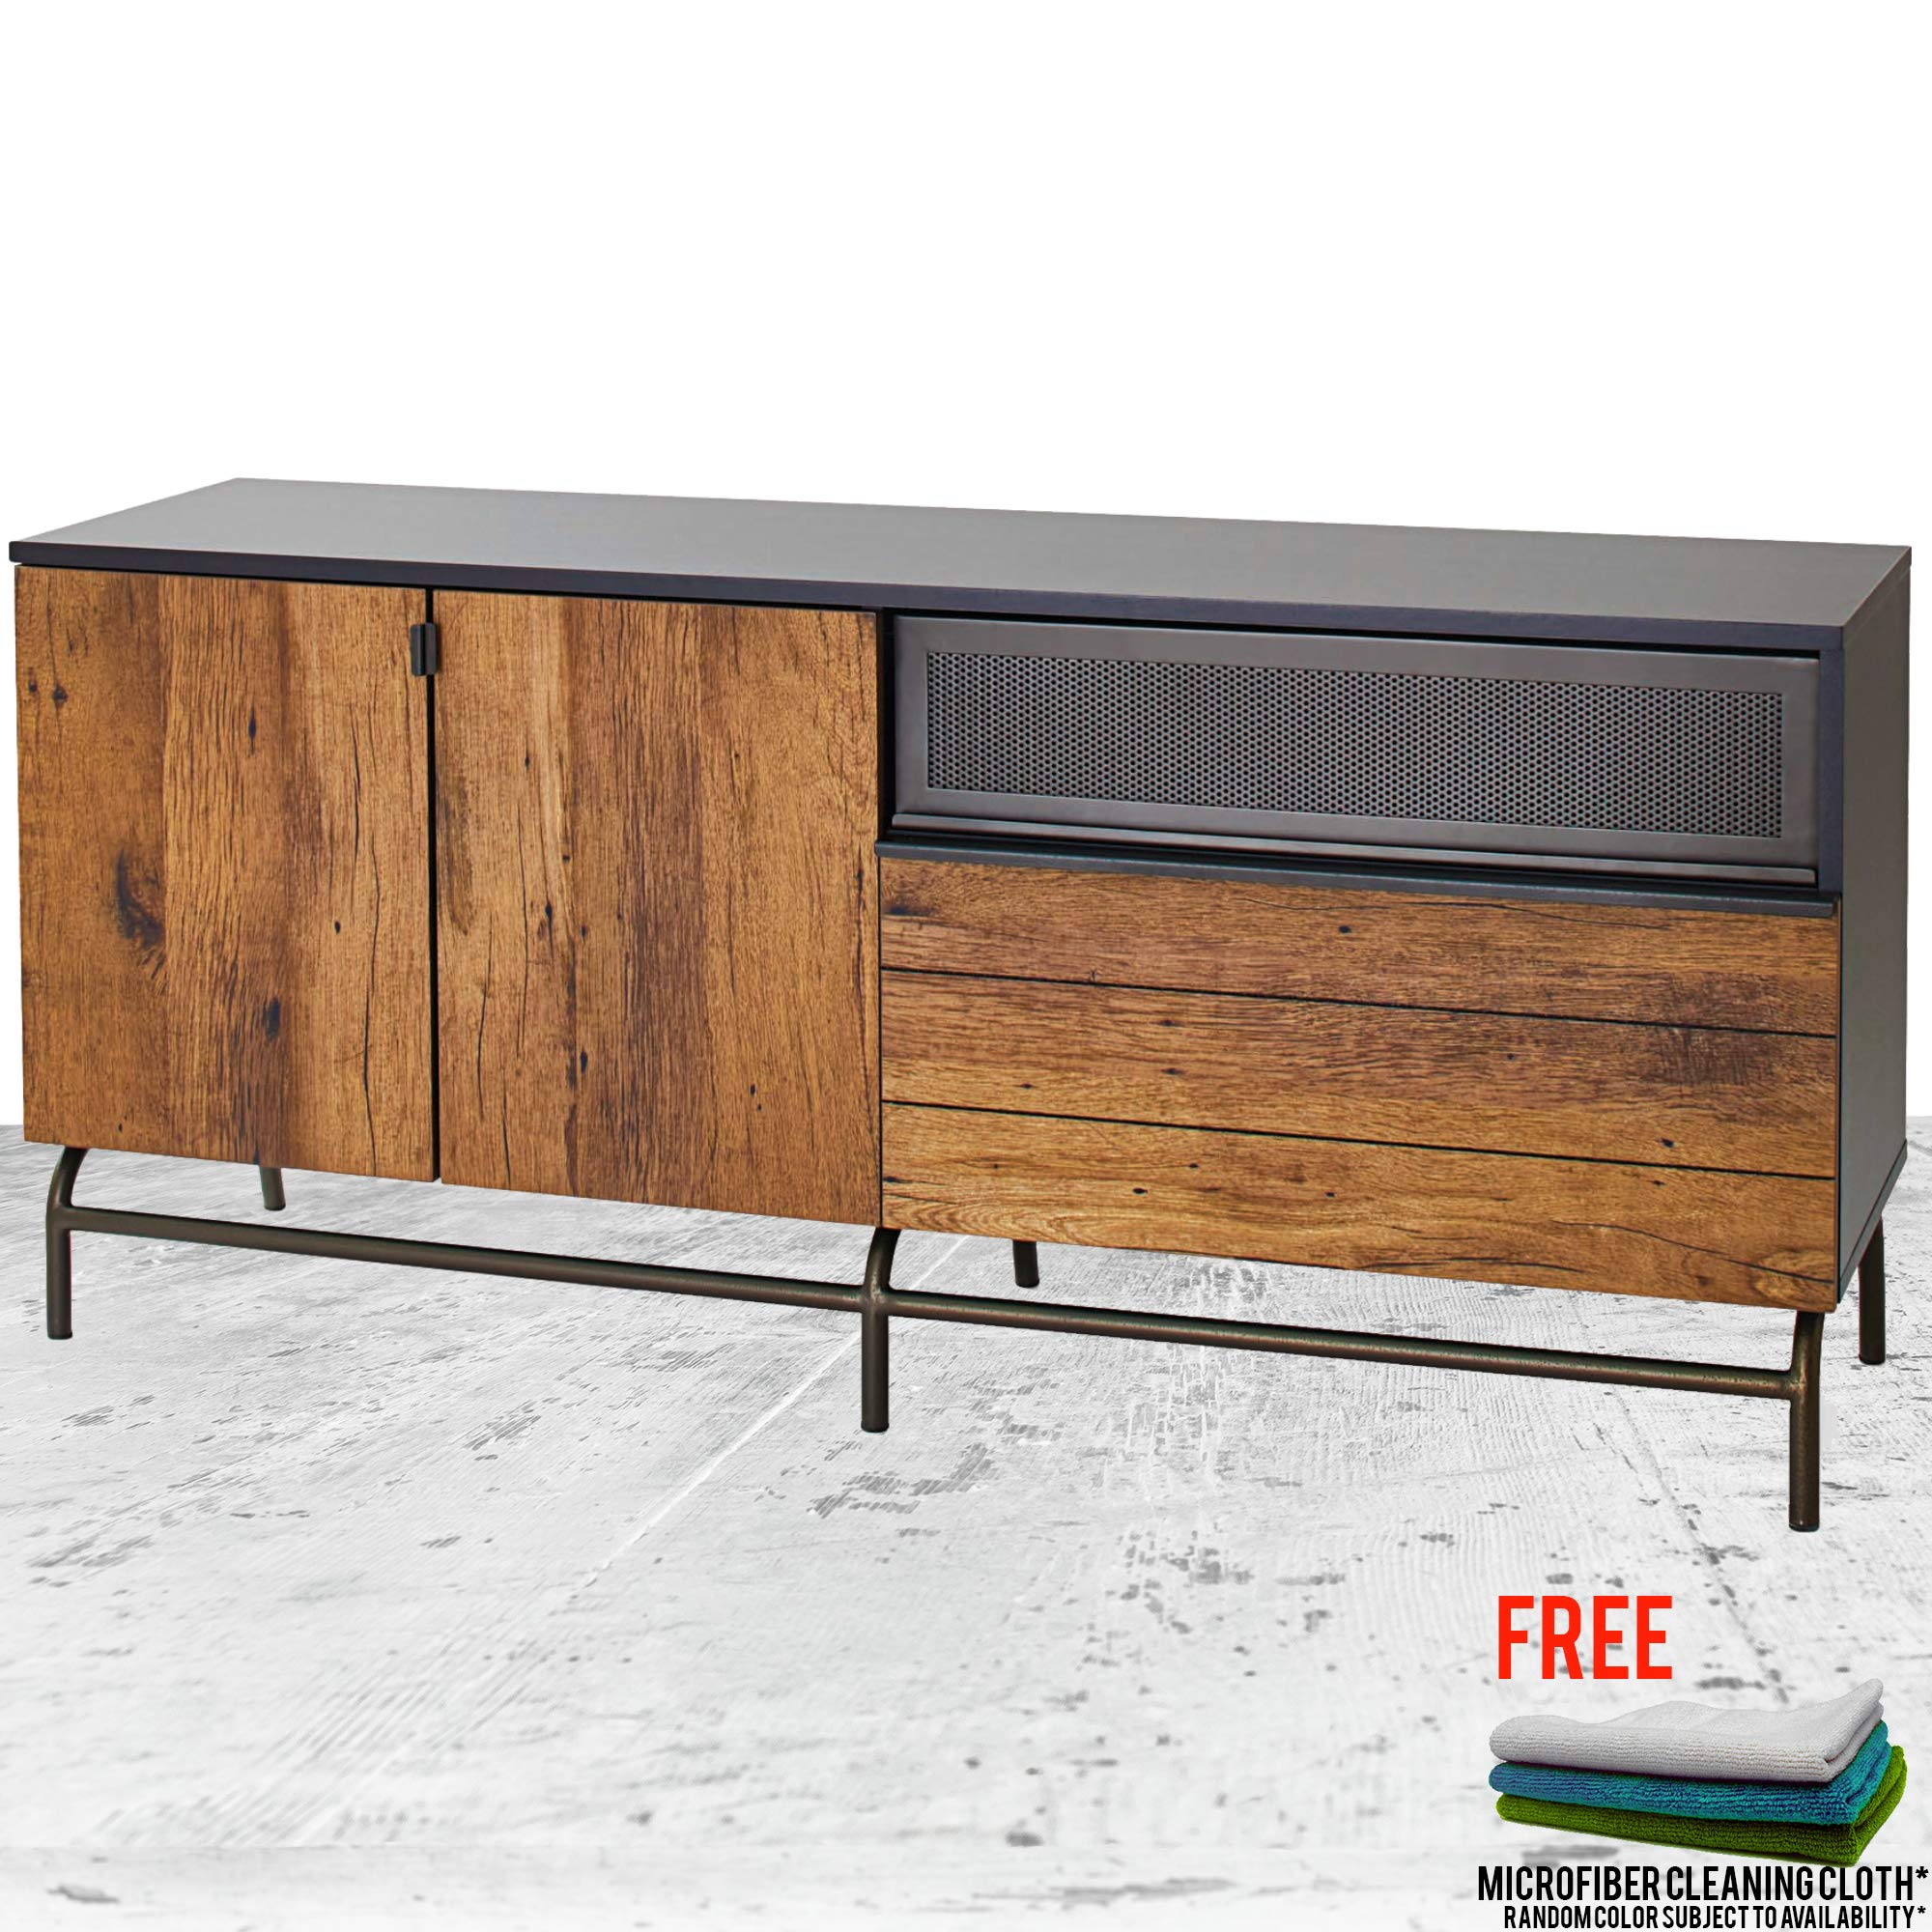 Lindon Place Entertainment Credenza for TV's up to 60 inches, Vintage Oak Finish TV Stand Bundle with Free Microfiber Cleaning Cloth by Better Homes and Garden